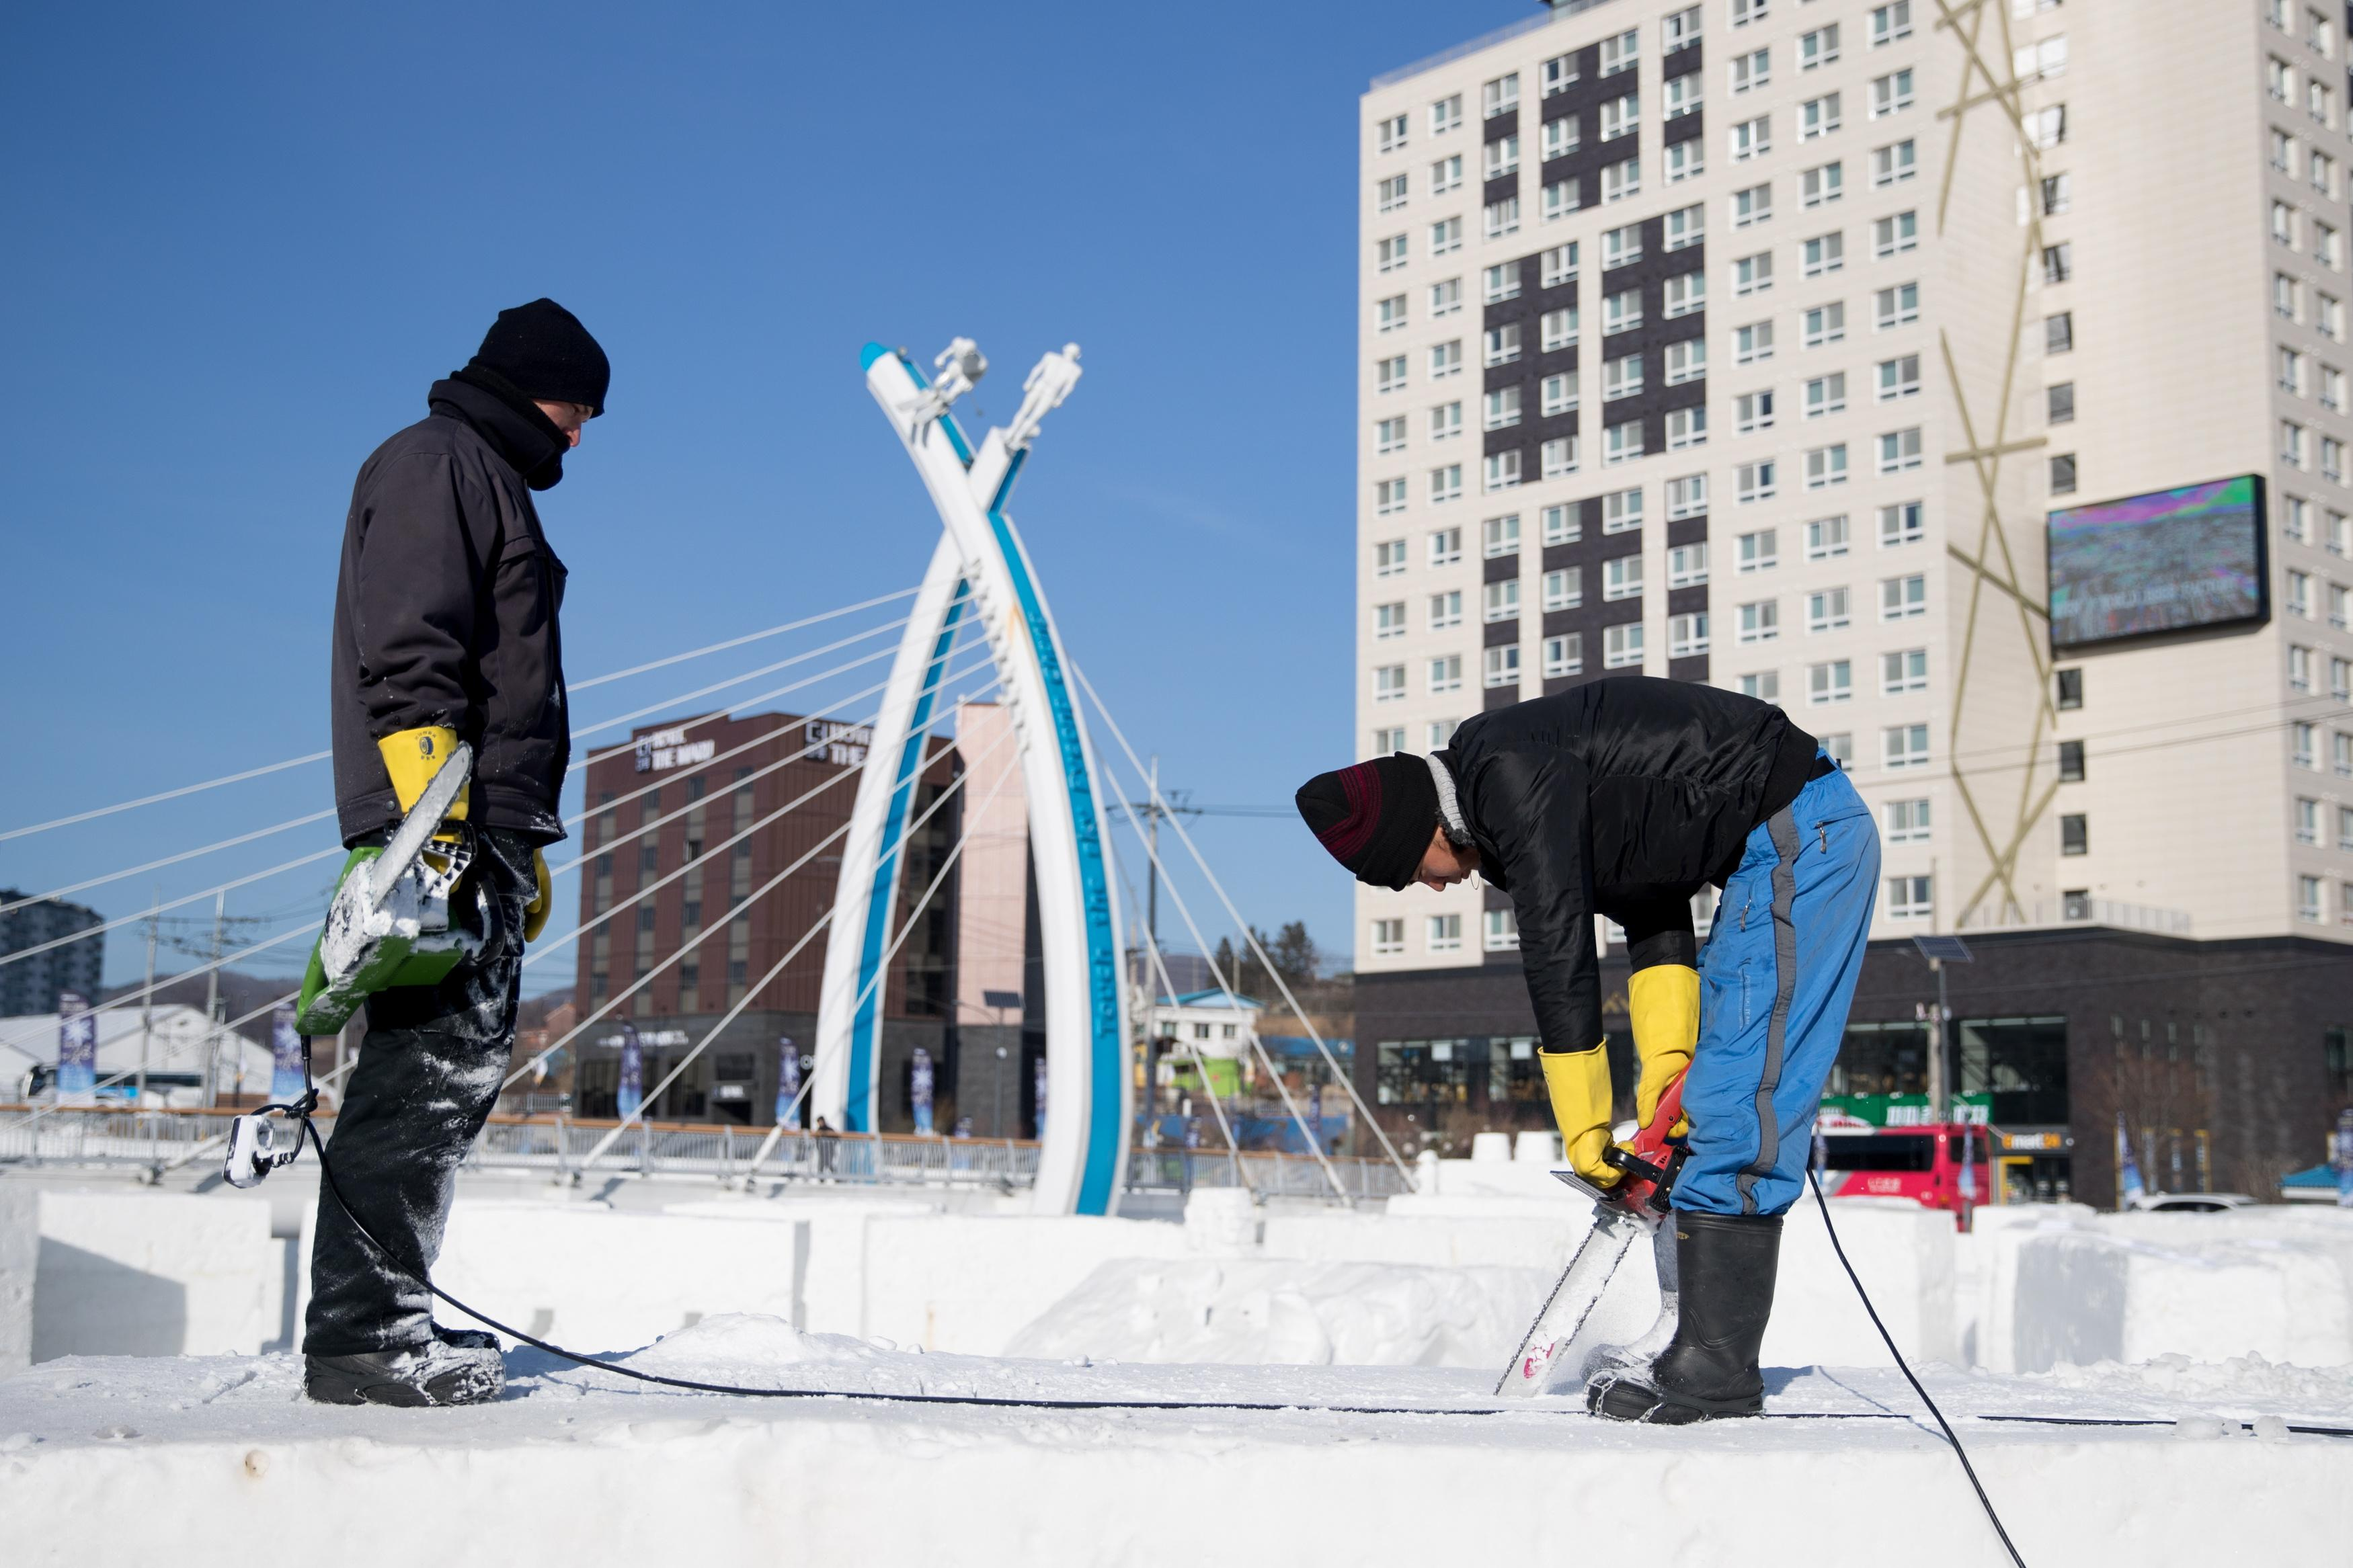 Temperature plummeted to -23C temperatures in South Korea, where the games are being held